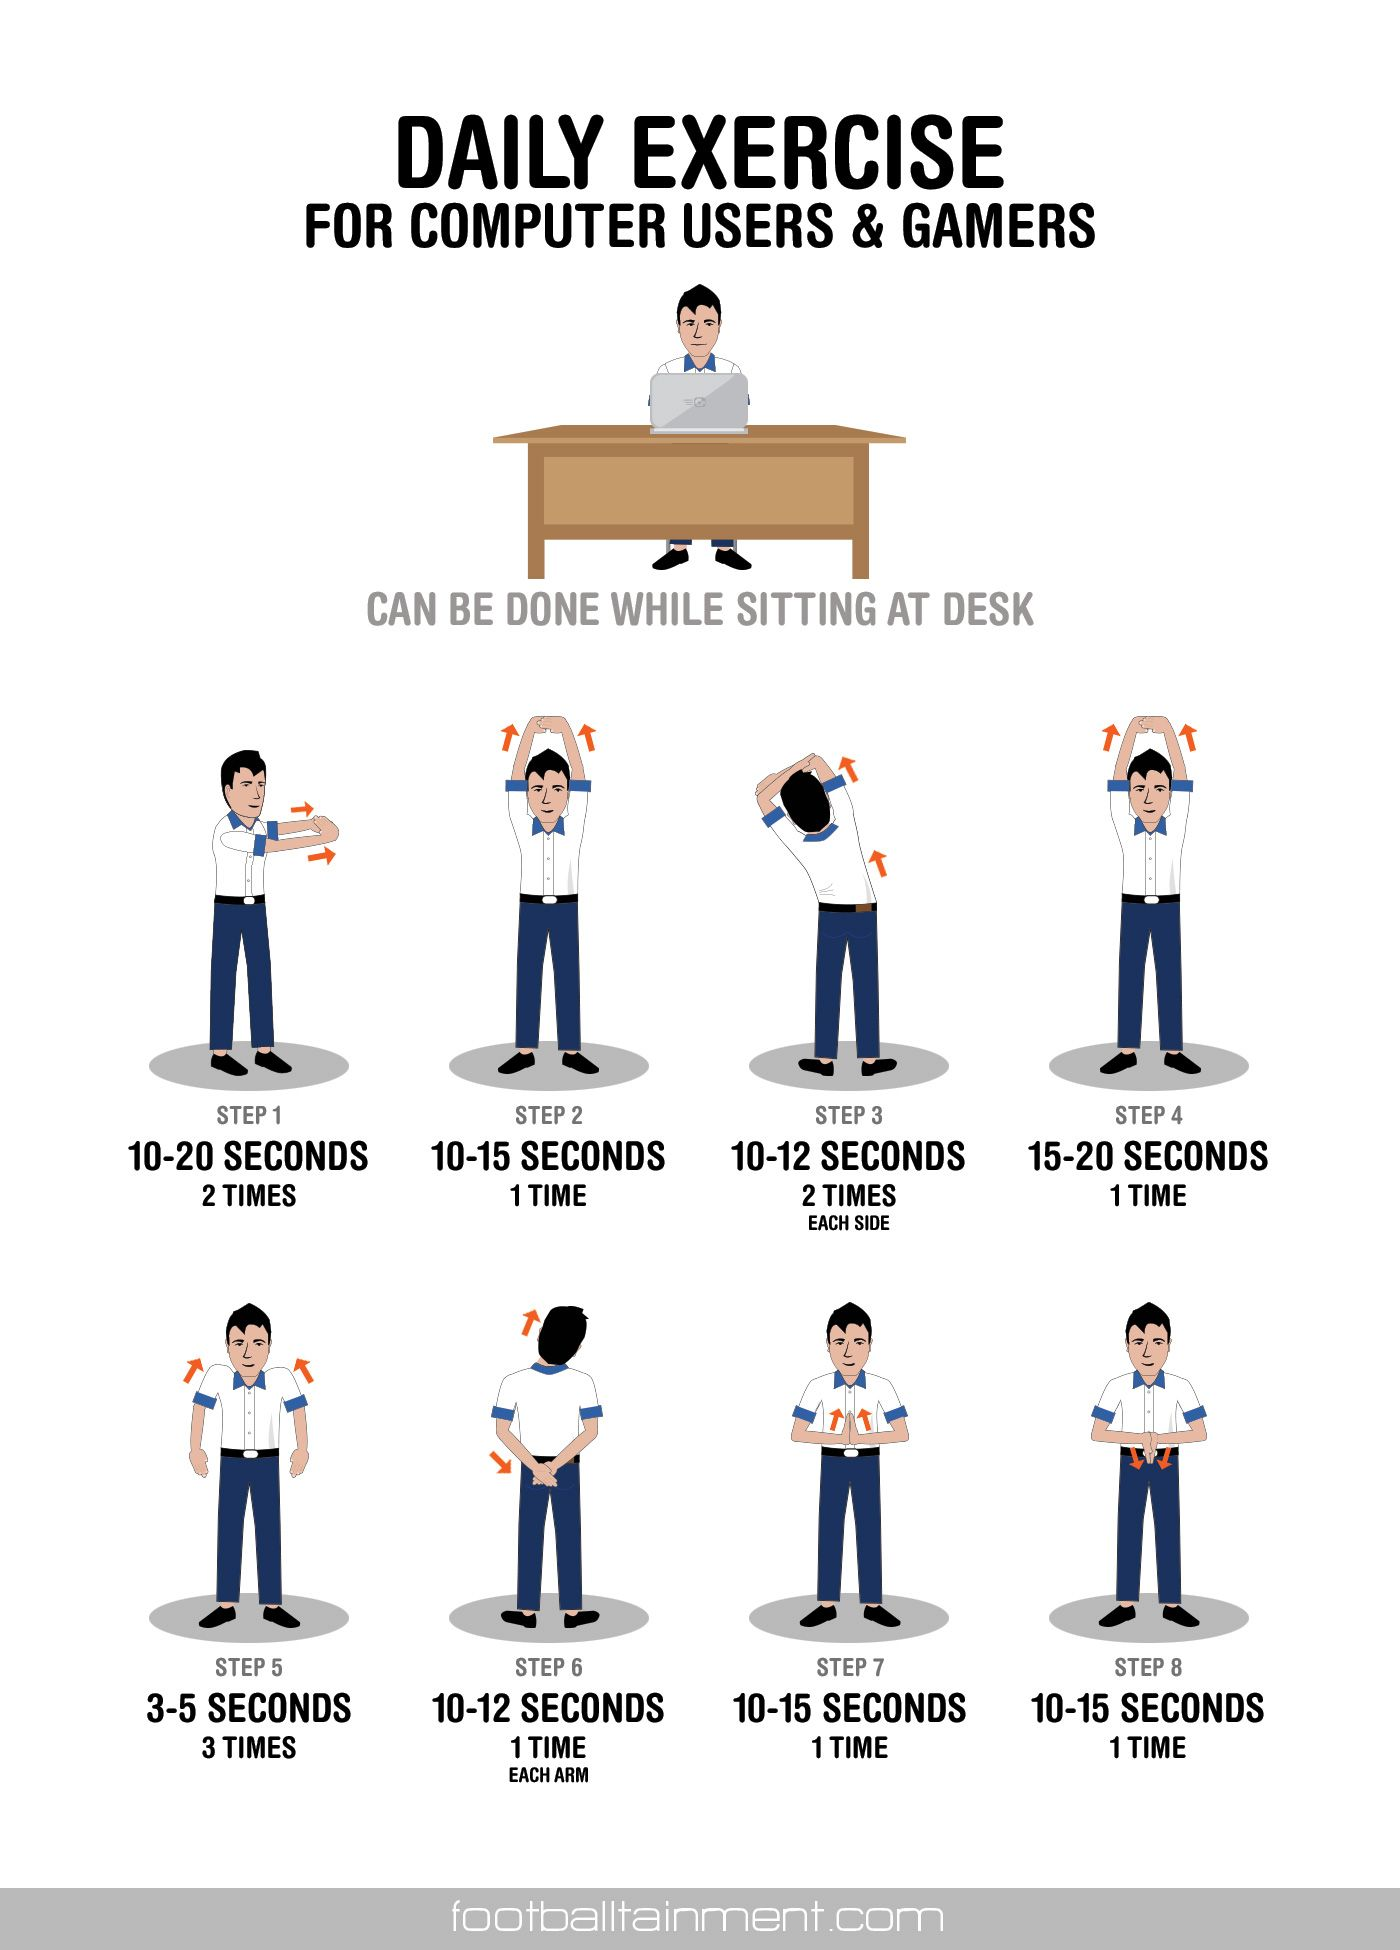 work desk daily exercise for gamers and puter which can be done